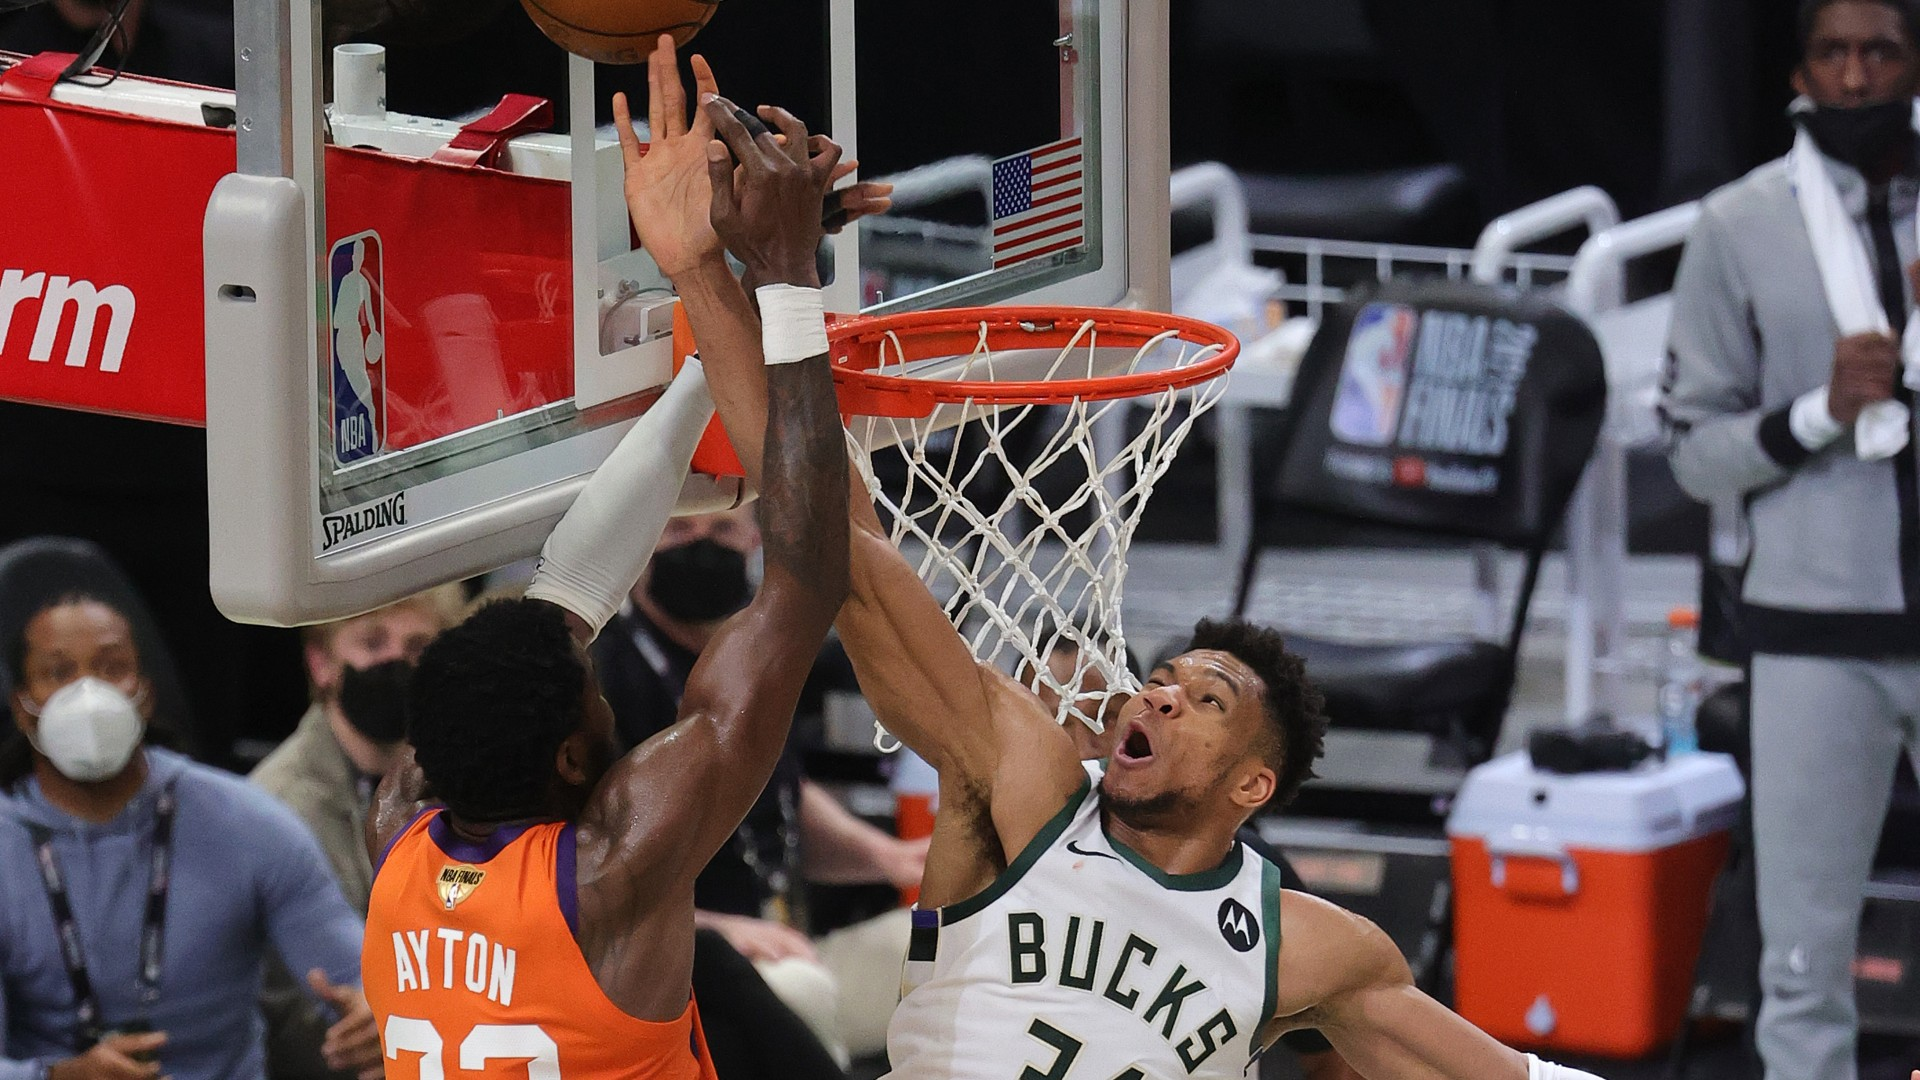 Twitter Reacts To Giannis Antetokounmpo S Block Of Deandre Ayton In Game 4 Of Bucks Suns Nba Finals Sporting News Canada